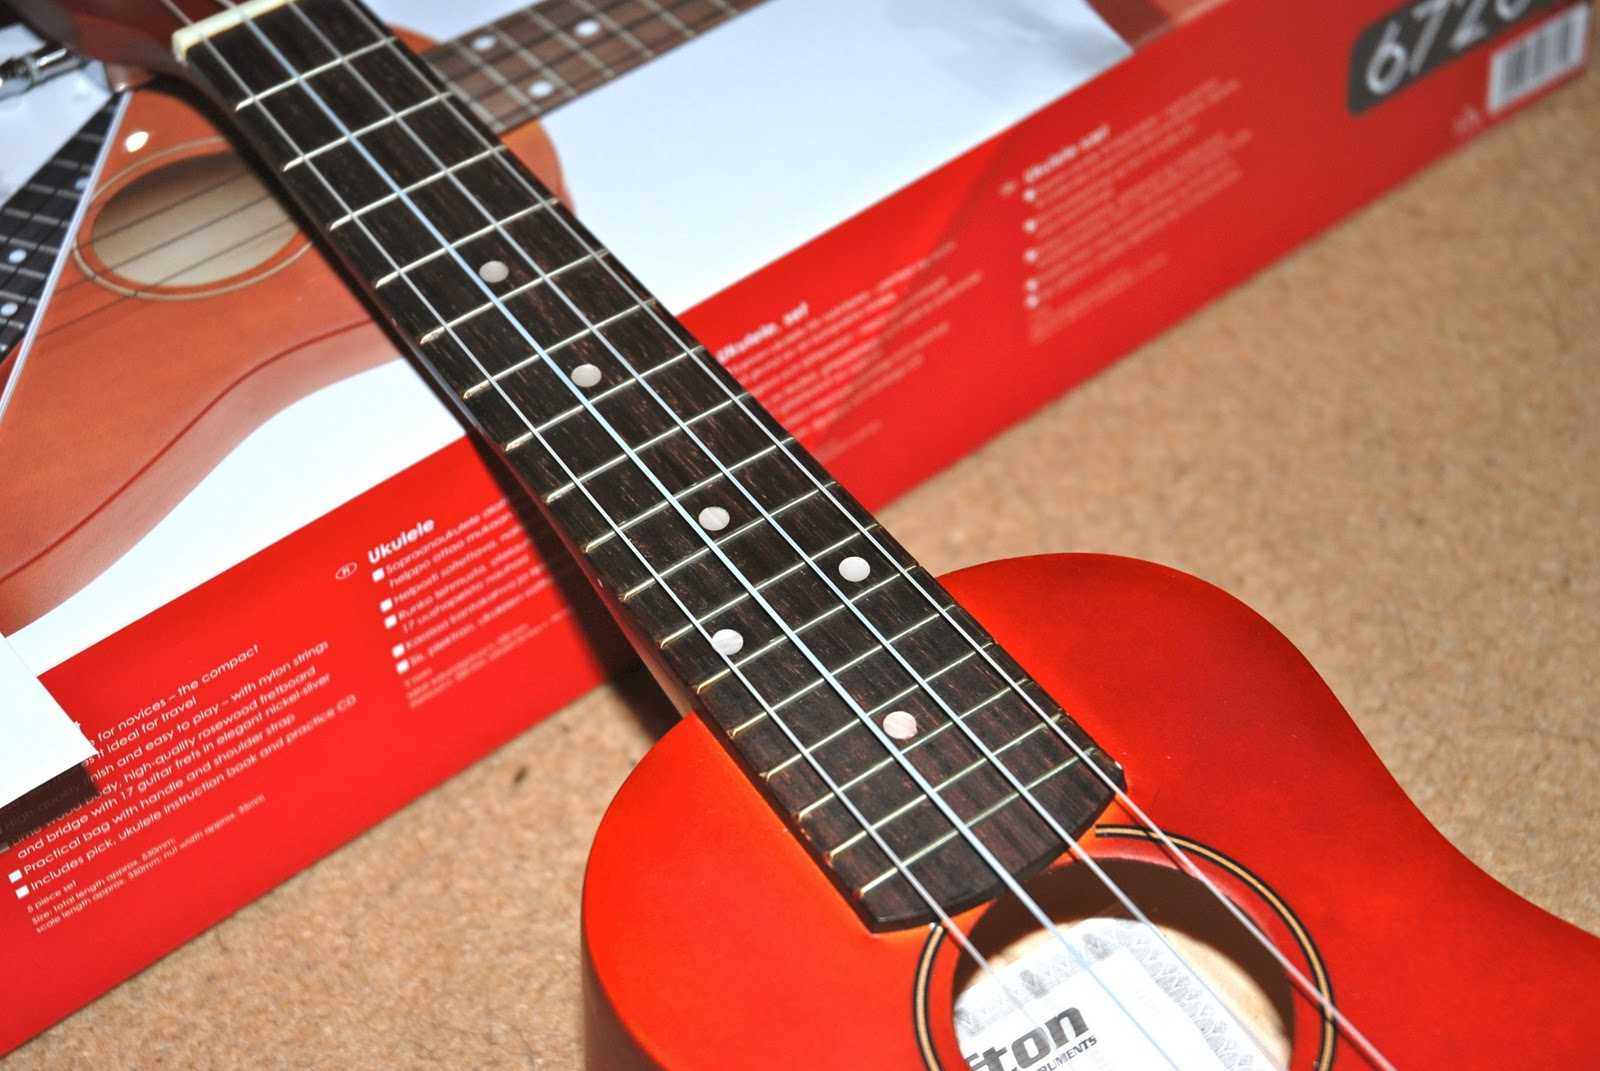 Clifton (Lidl) Ukulele kit - REVIEW | GOT A UKULELE - Uke blog for1600